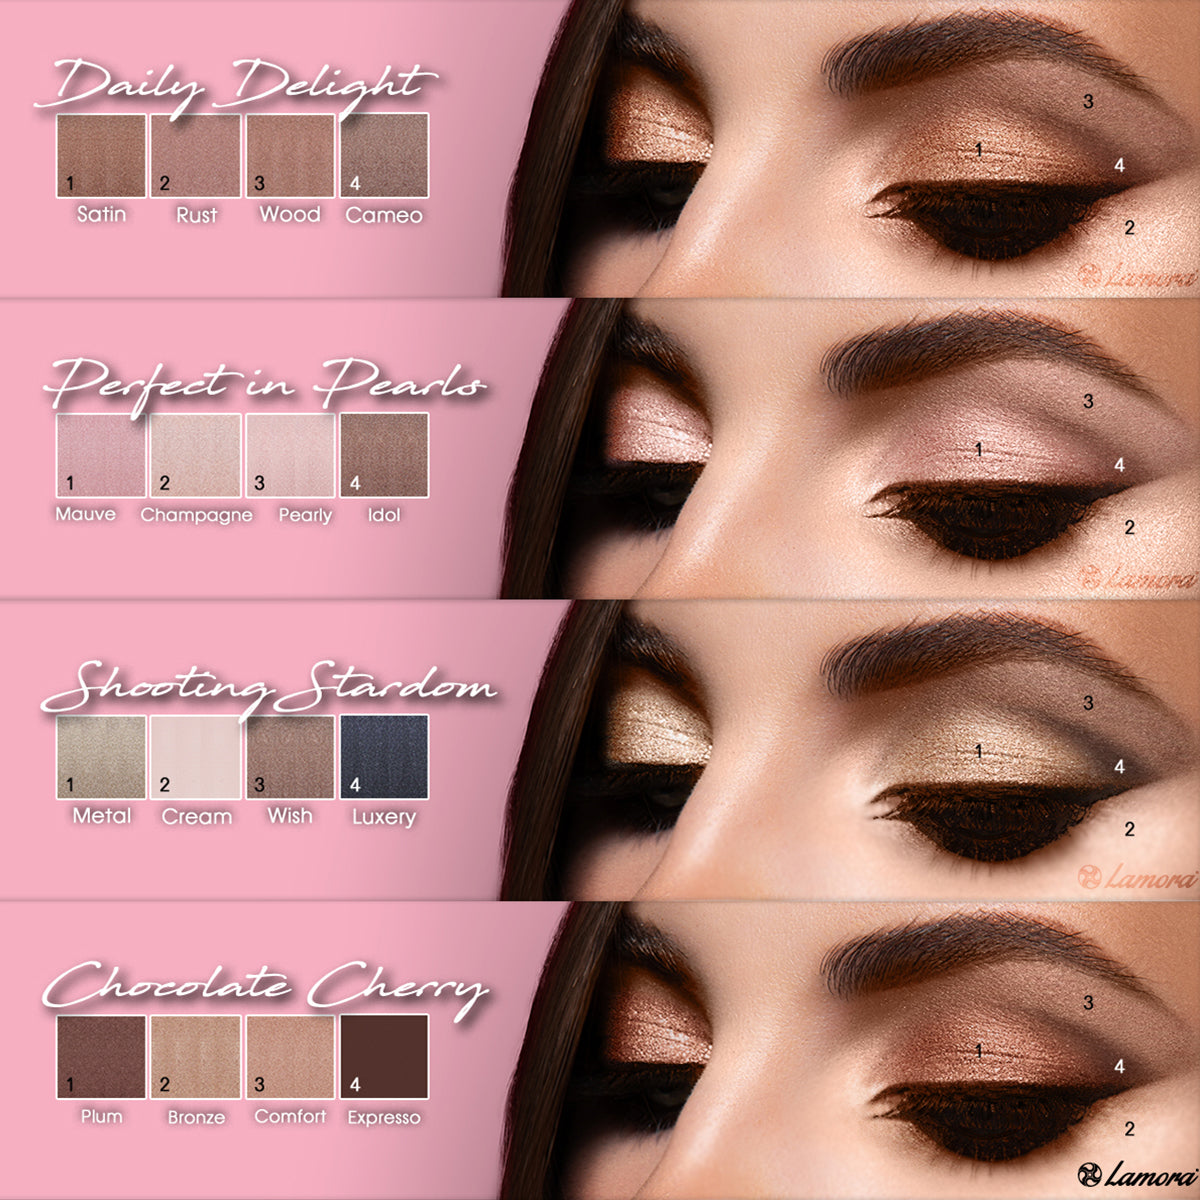 Eyeshadow makeup color combination ideas